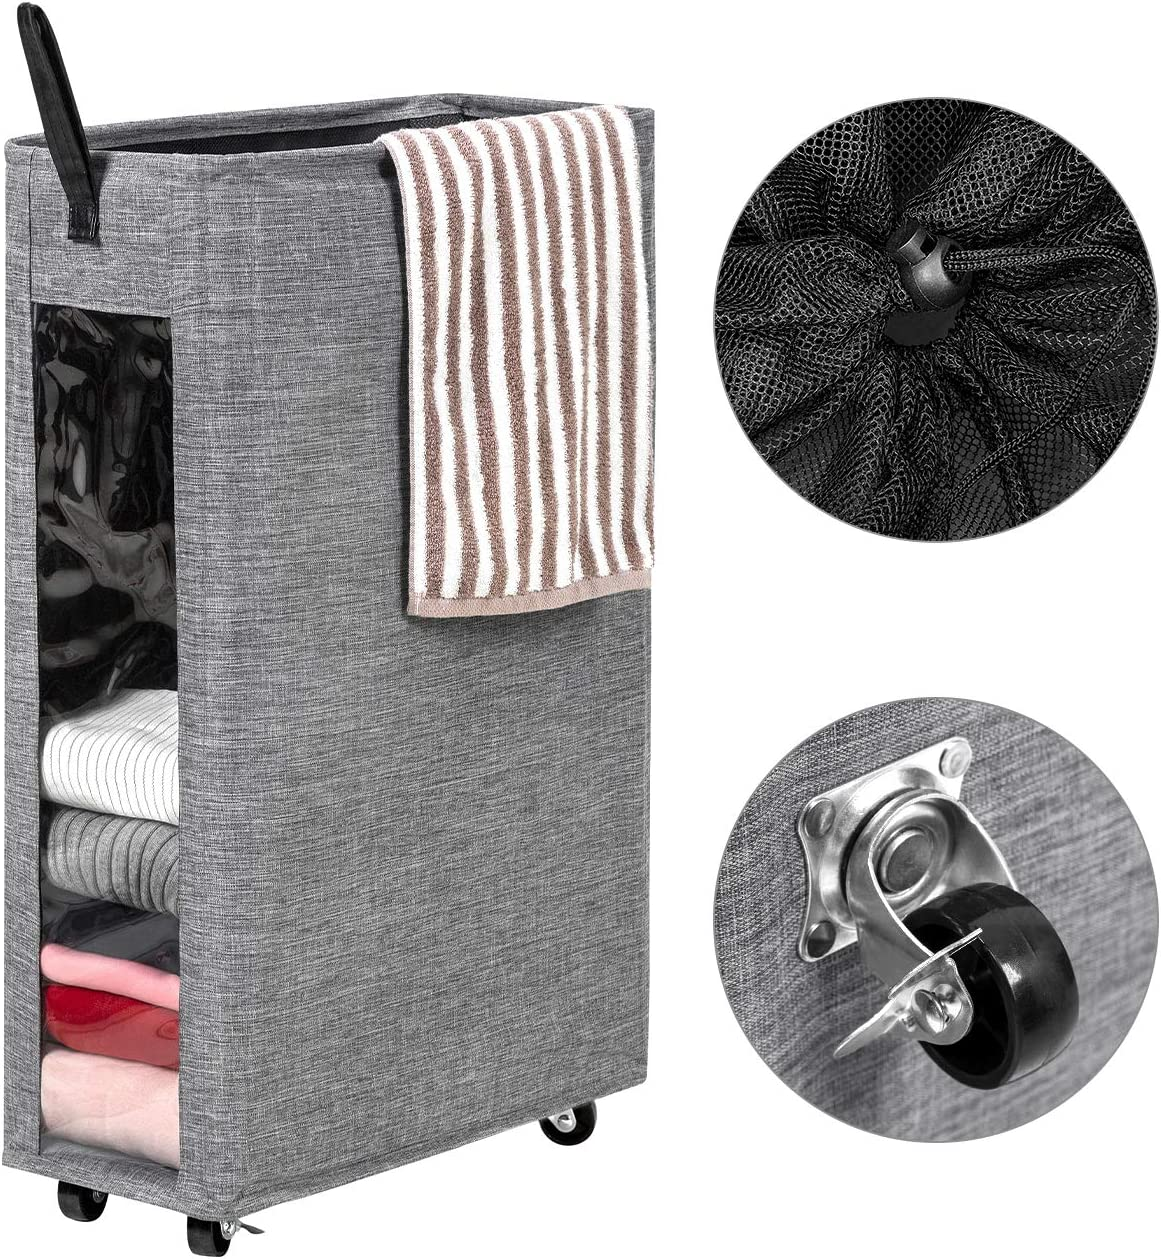 WOWLIVE 27 inches Slim Rolling Laundry Hamper with Wheels Tall Thin Laundry Basket with Clear Window Handy Collapsible Clothes Hamper Mesh Cover Rectangular Storage Corner Bin (Grey2)